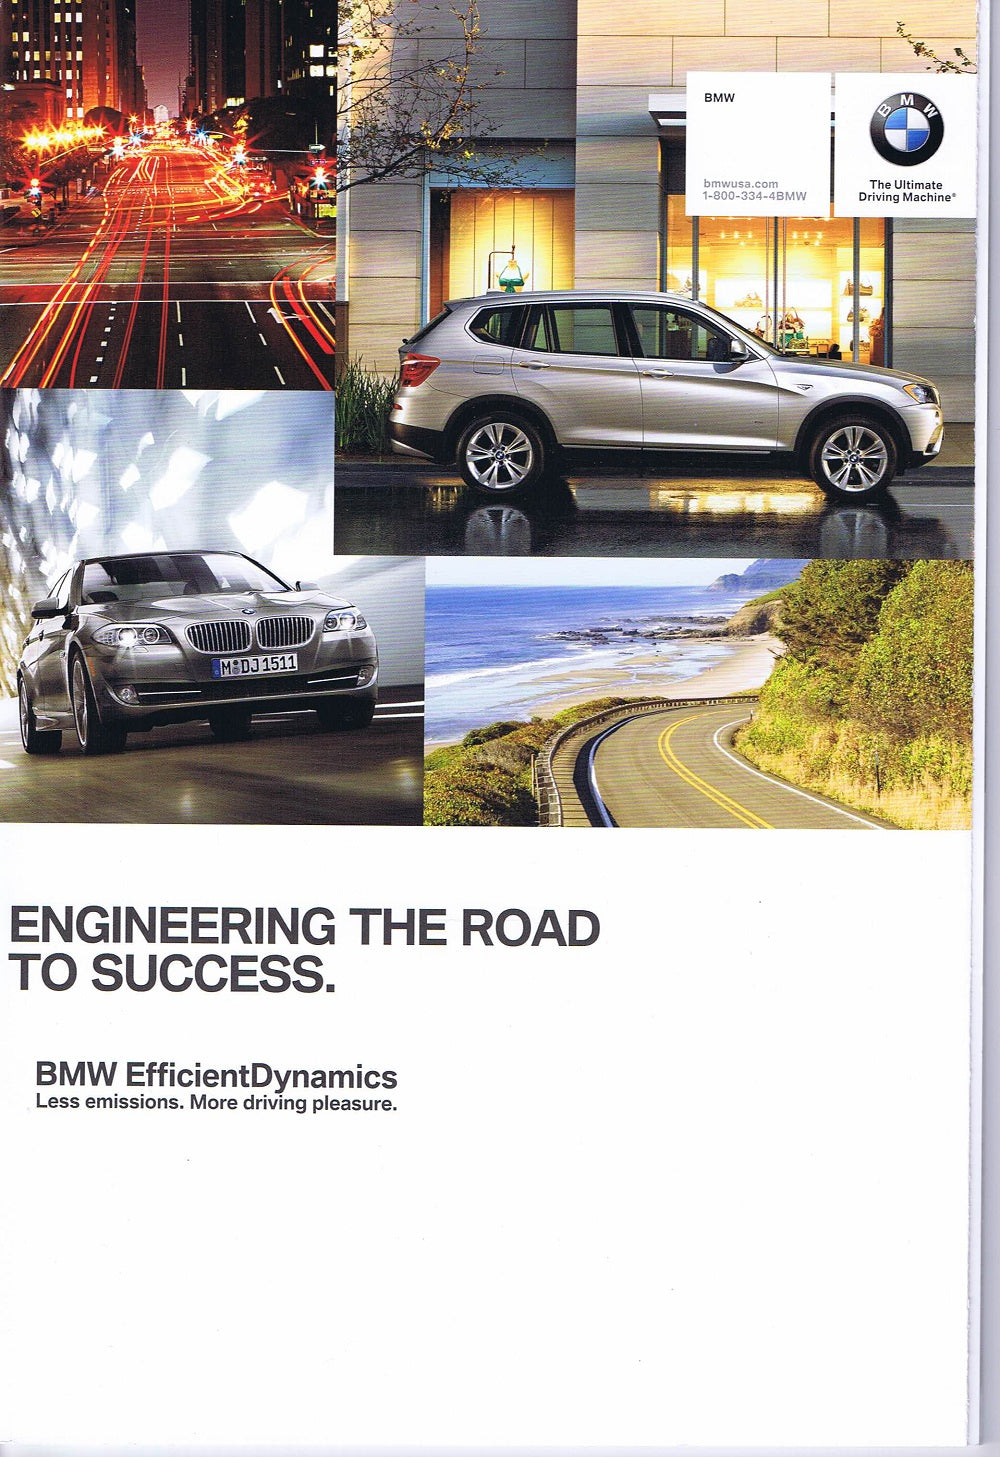 Brochure - Engineering the Road to Success. BMW Efficient Dynamics Less emissions. More driving pleasure - 2011 Full Line